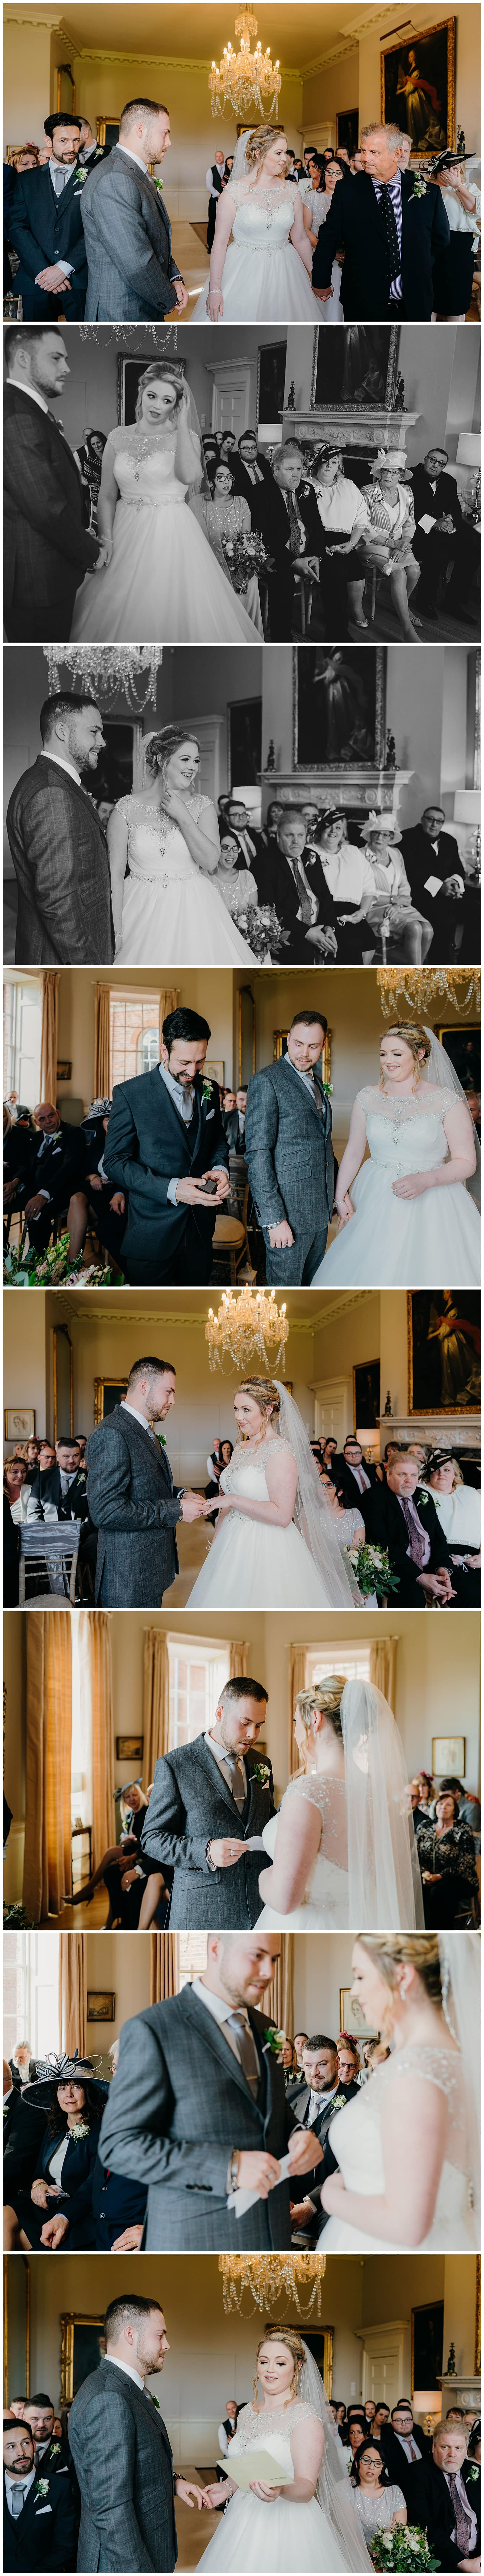 Bride and groom exchange vows at their wedding at Norwood Park